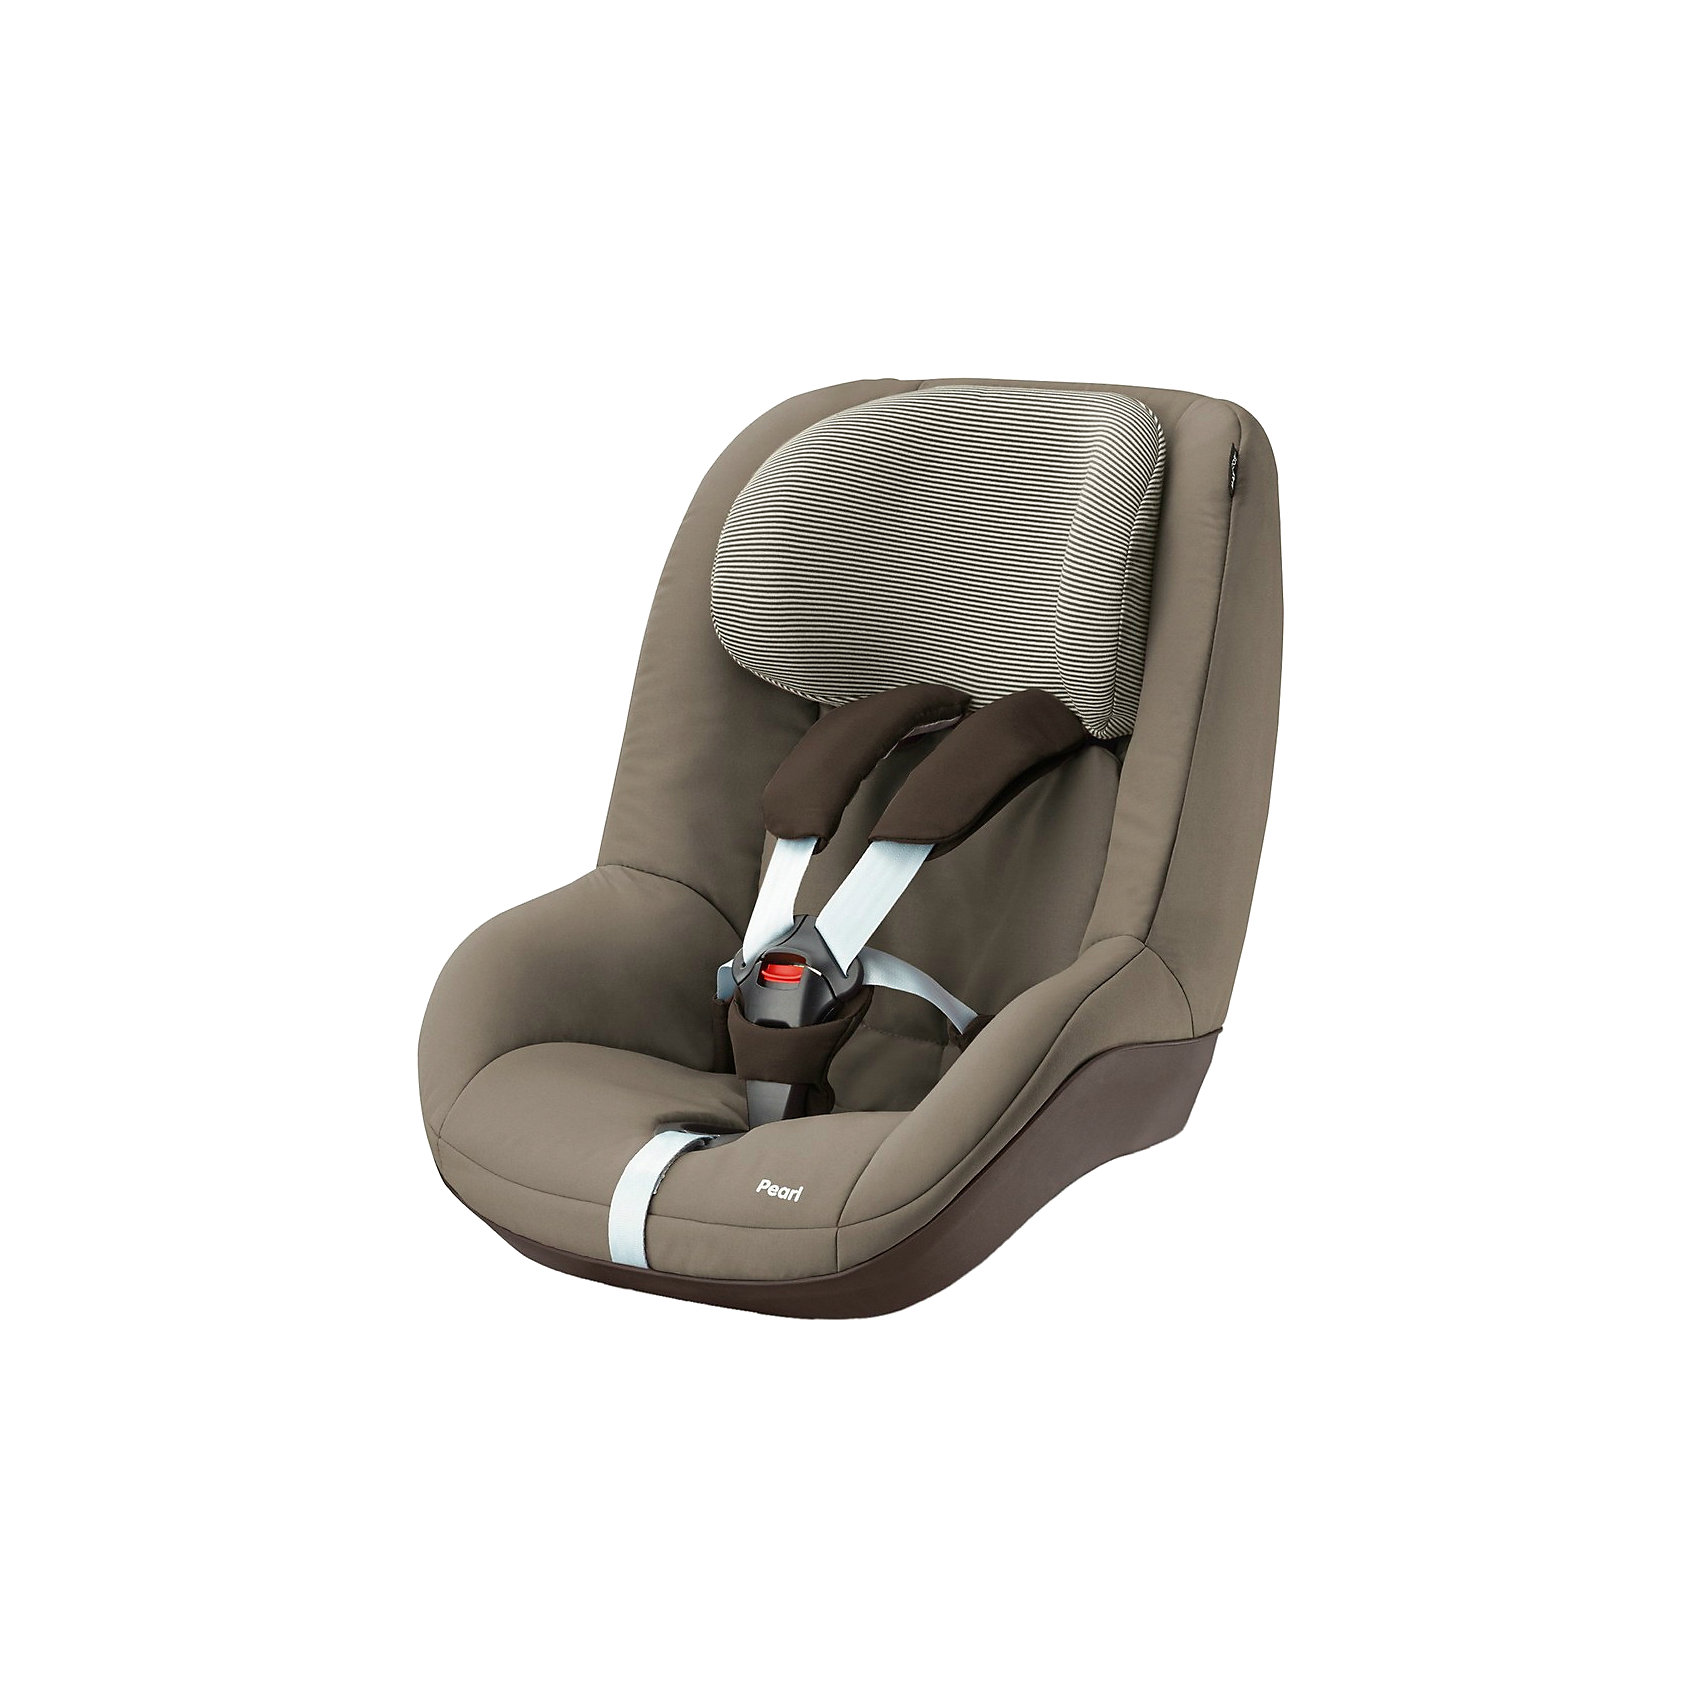 Автокресло 2wayPearl 9-18 кг., Maxi-Cosi, Earth Brown